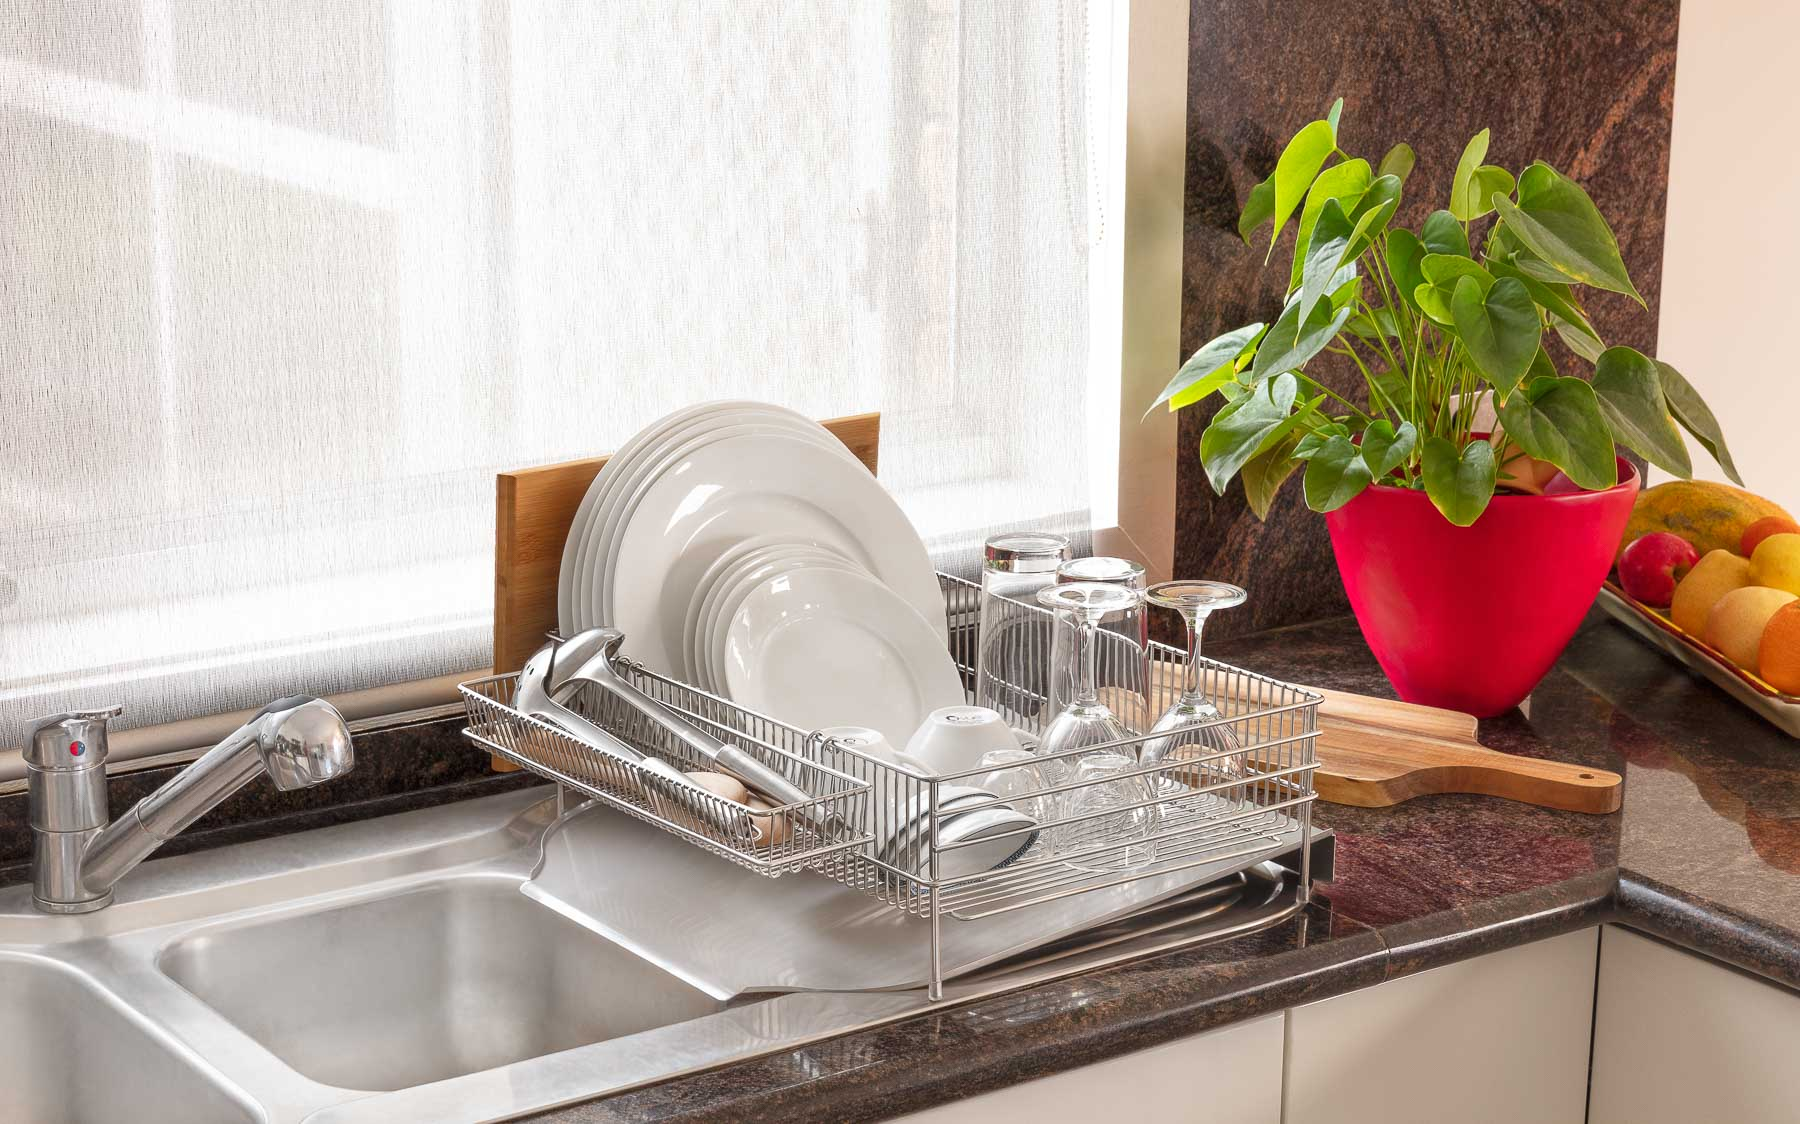 Dish Rack In Kitchen with items lifestyle - Product photography for Amazon